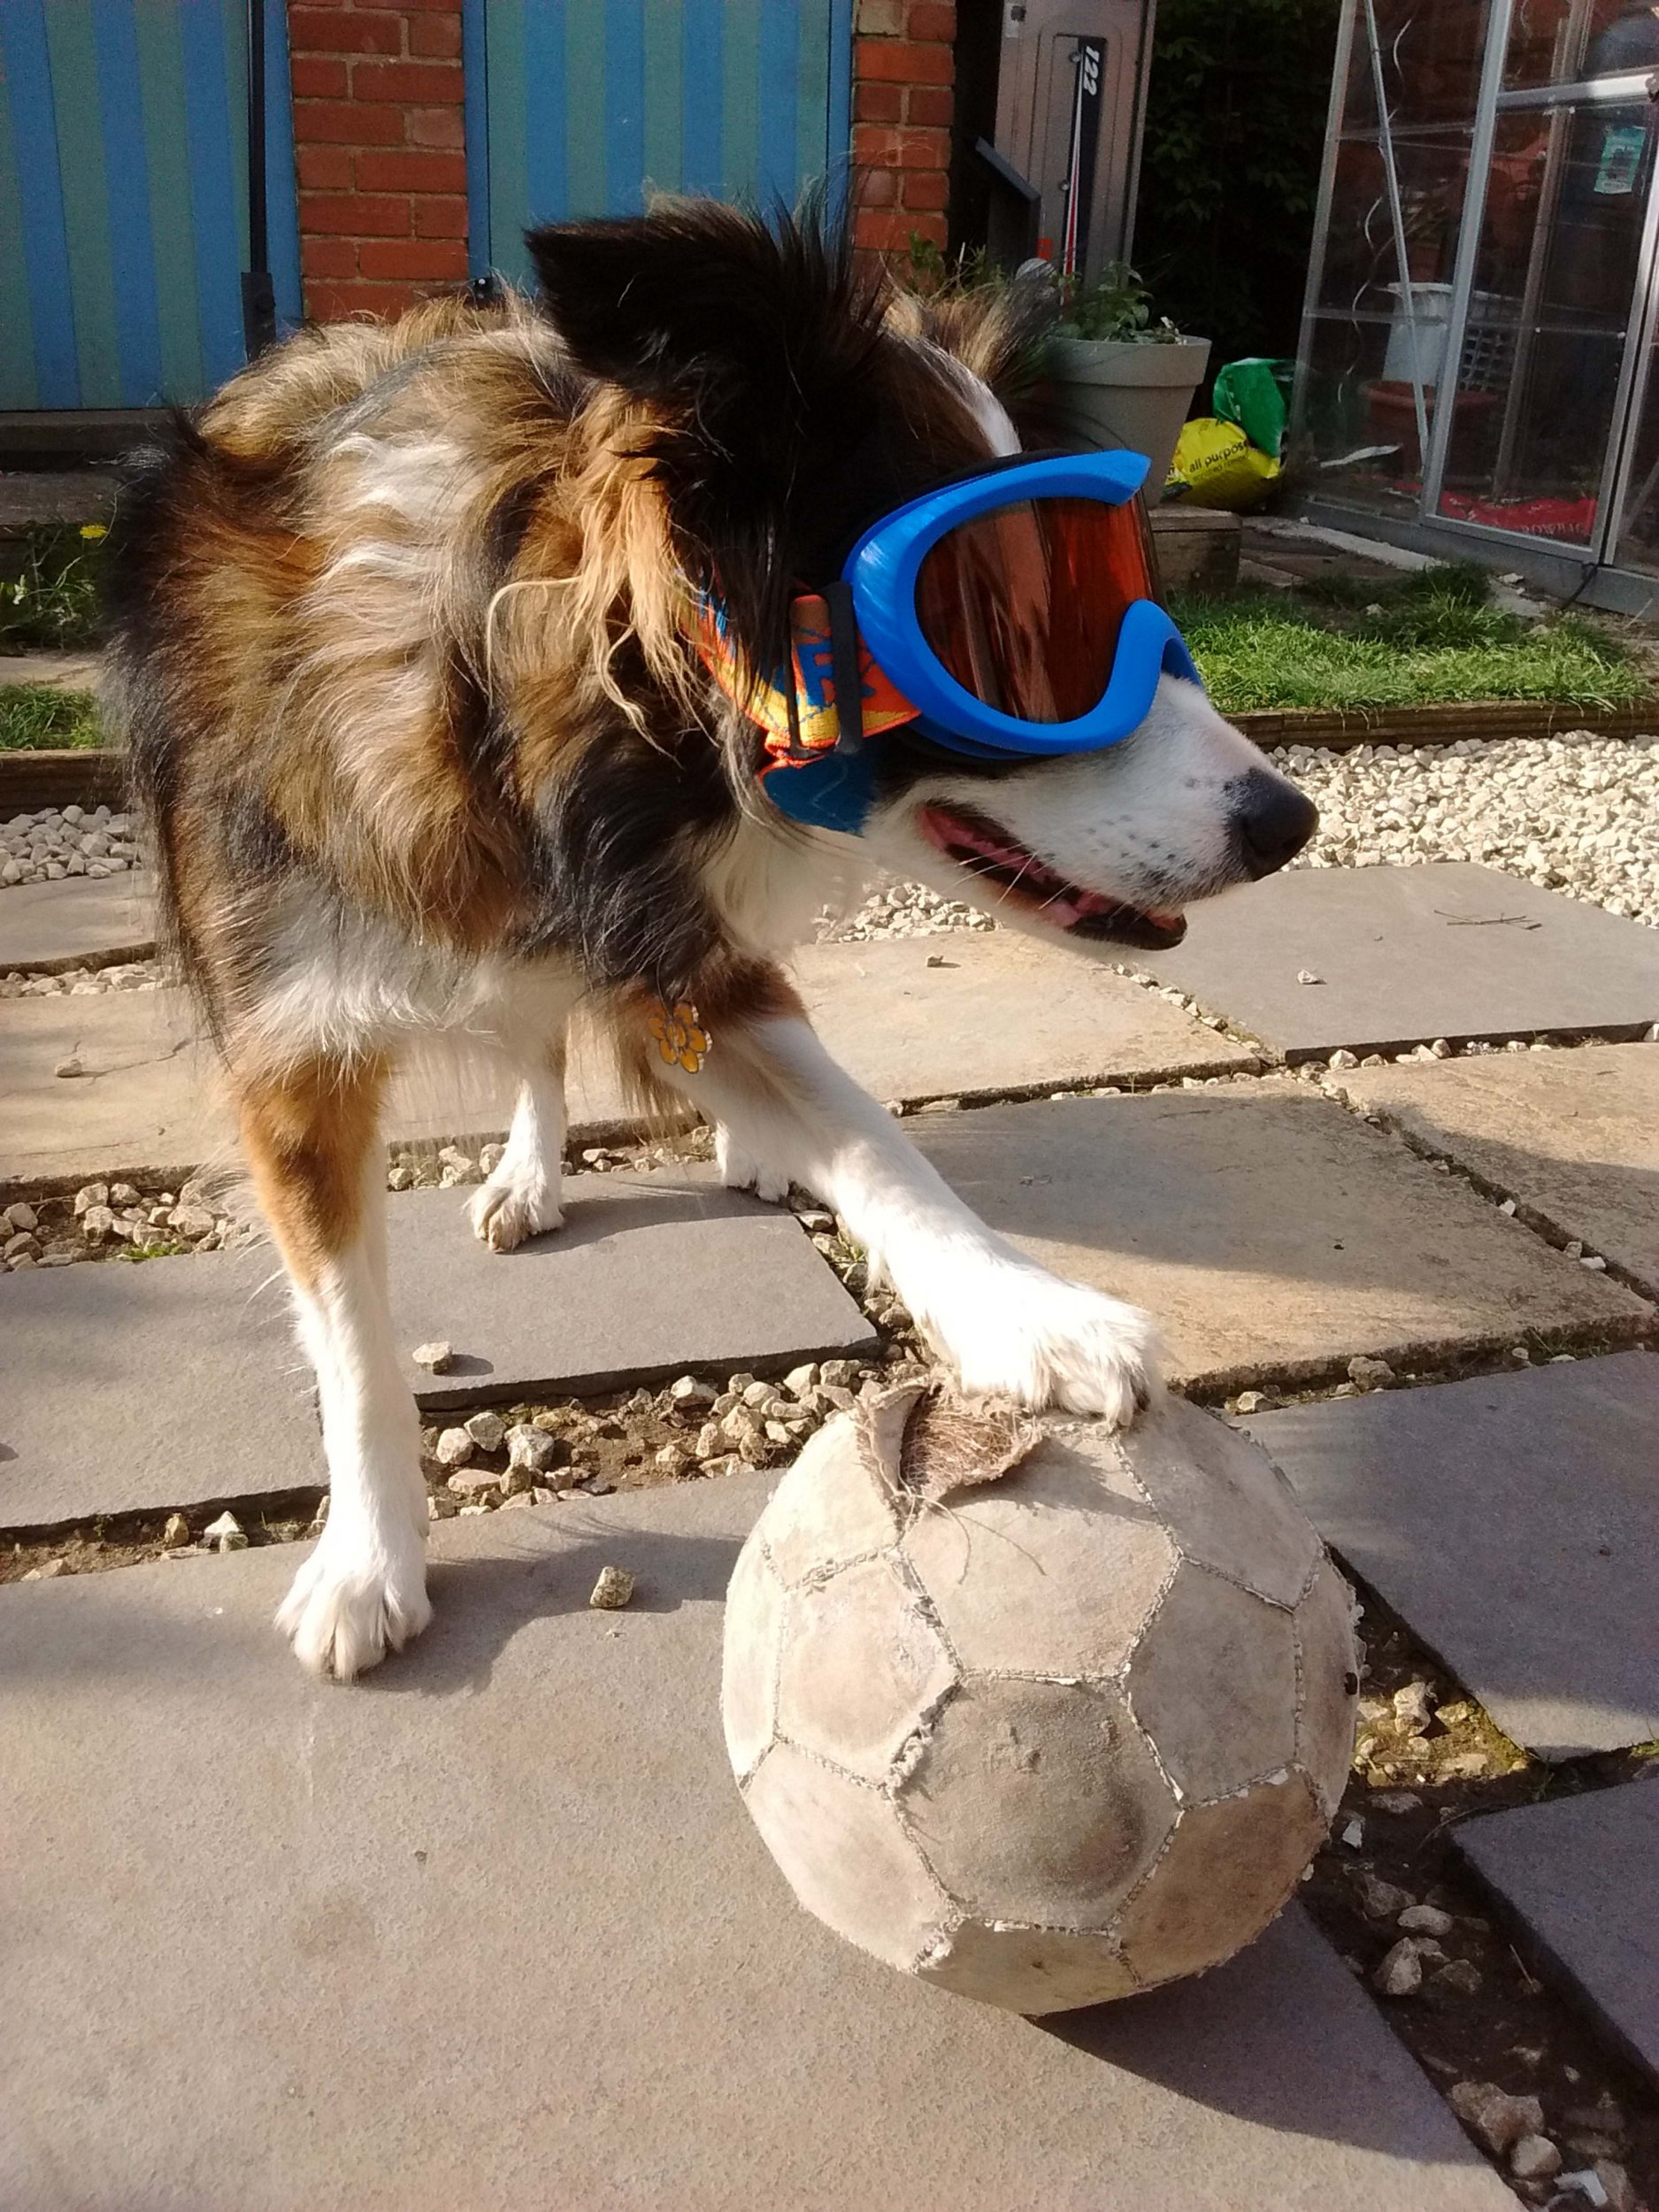 Sheepdog has eye condition, styles it out with ski goggles